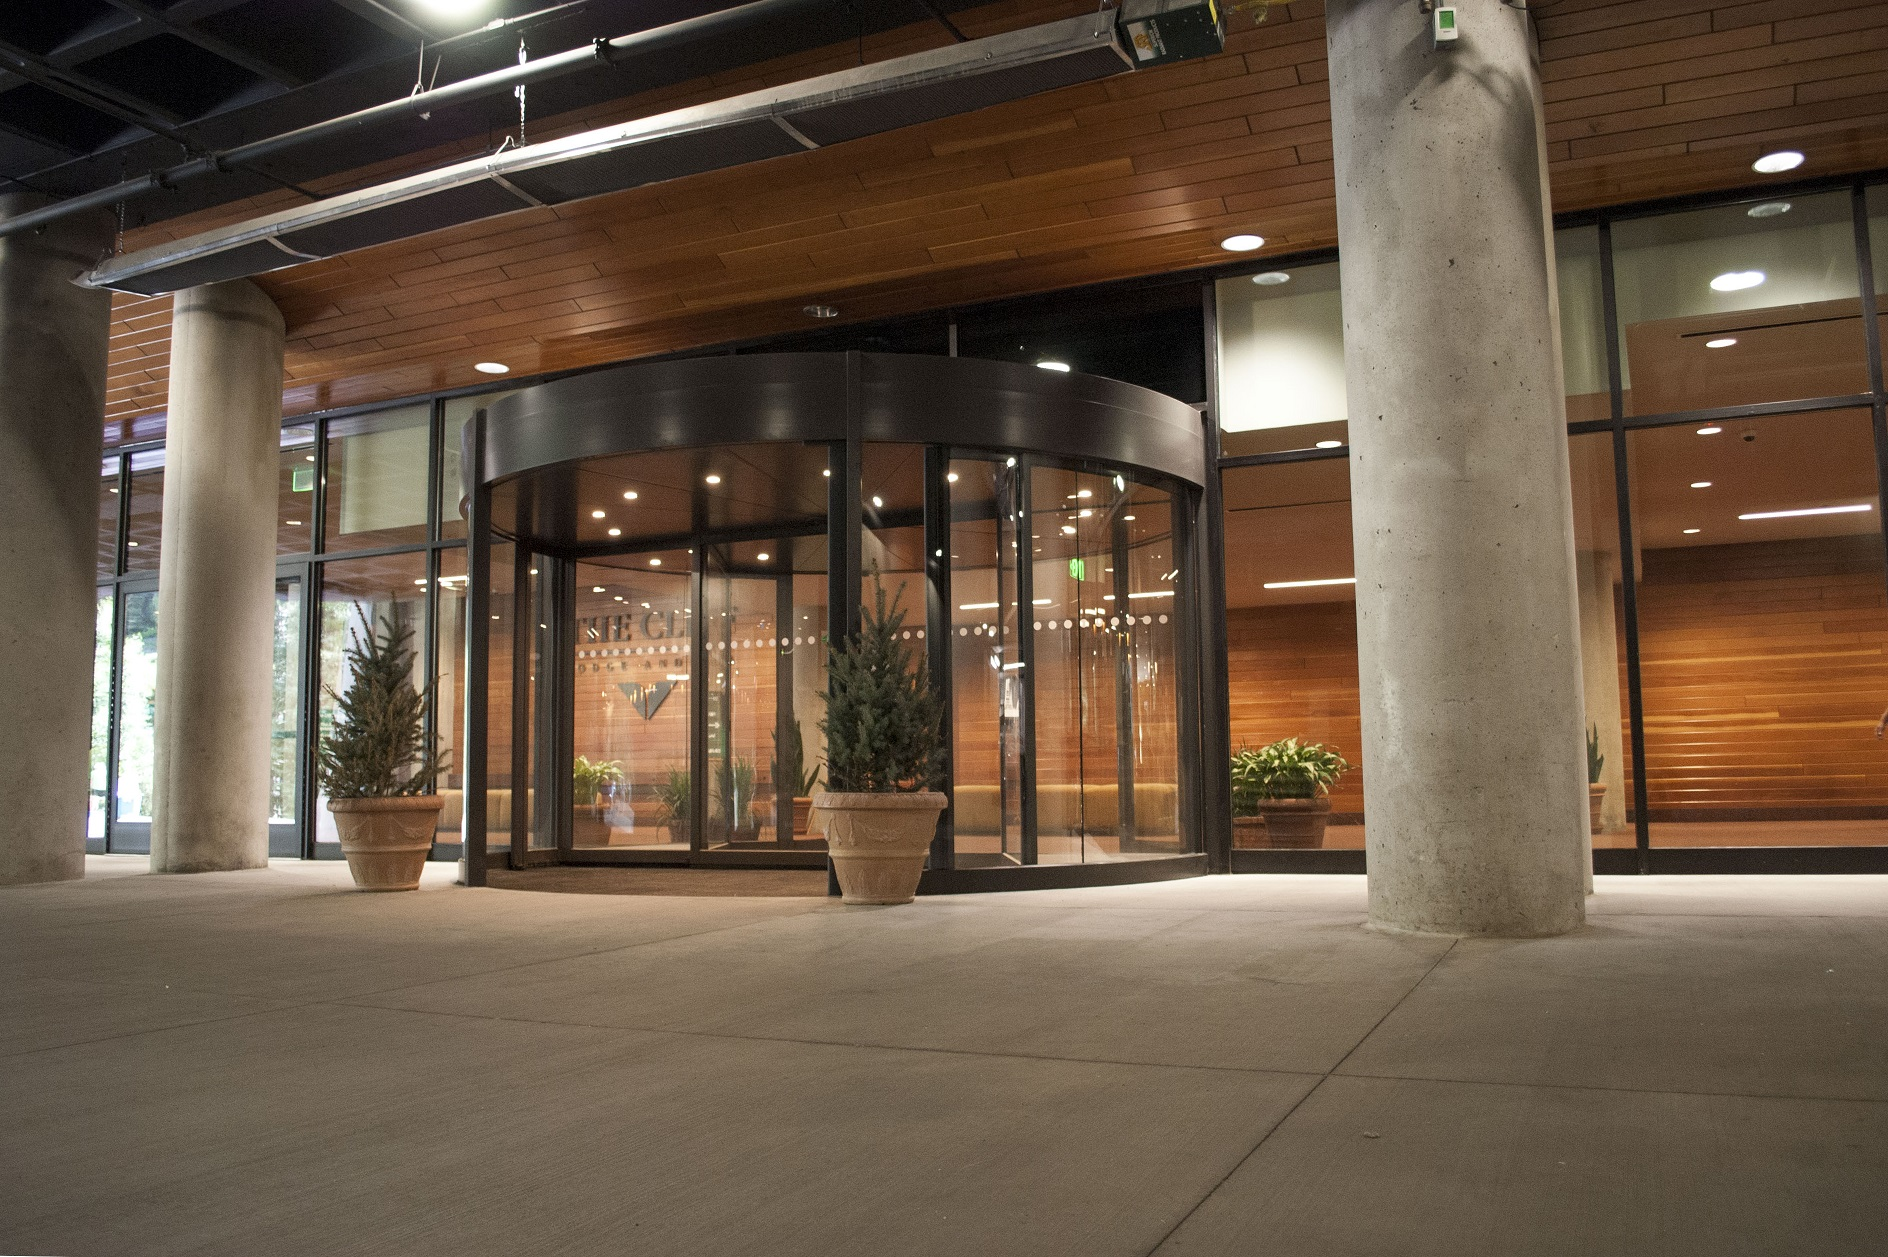 Revolving Doors Counteract the Wind Tunnel Effect at Buildings